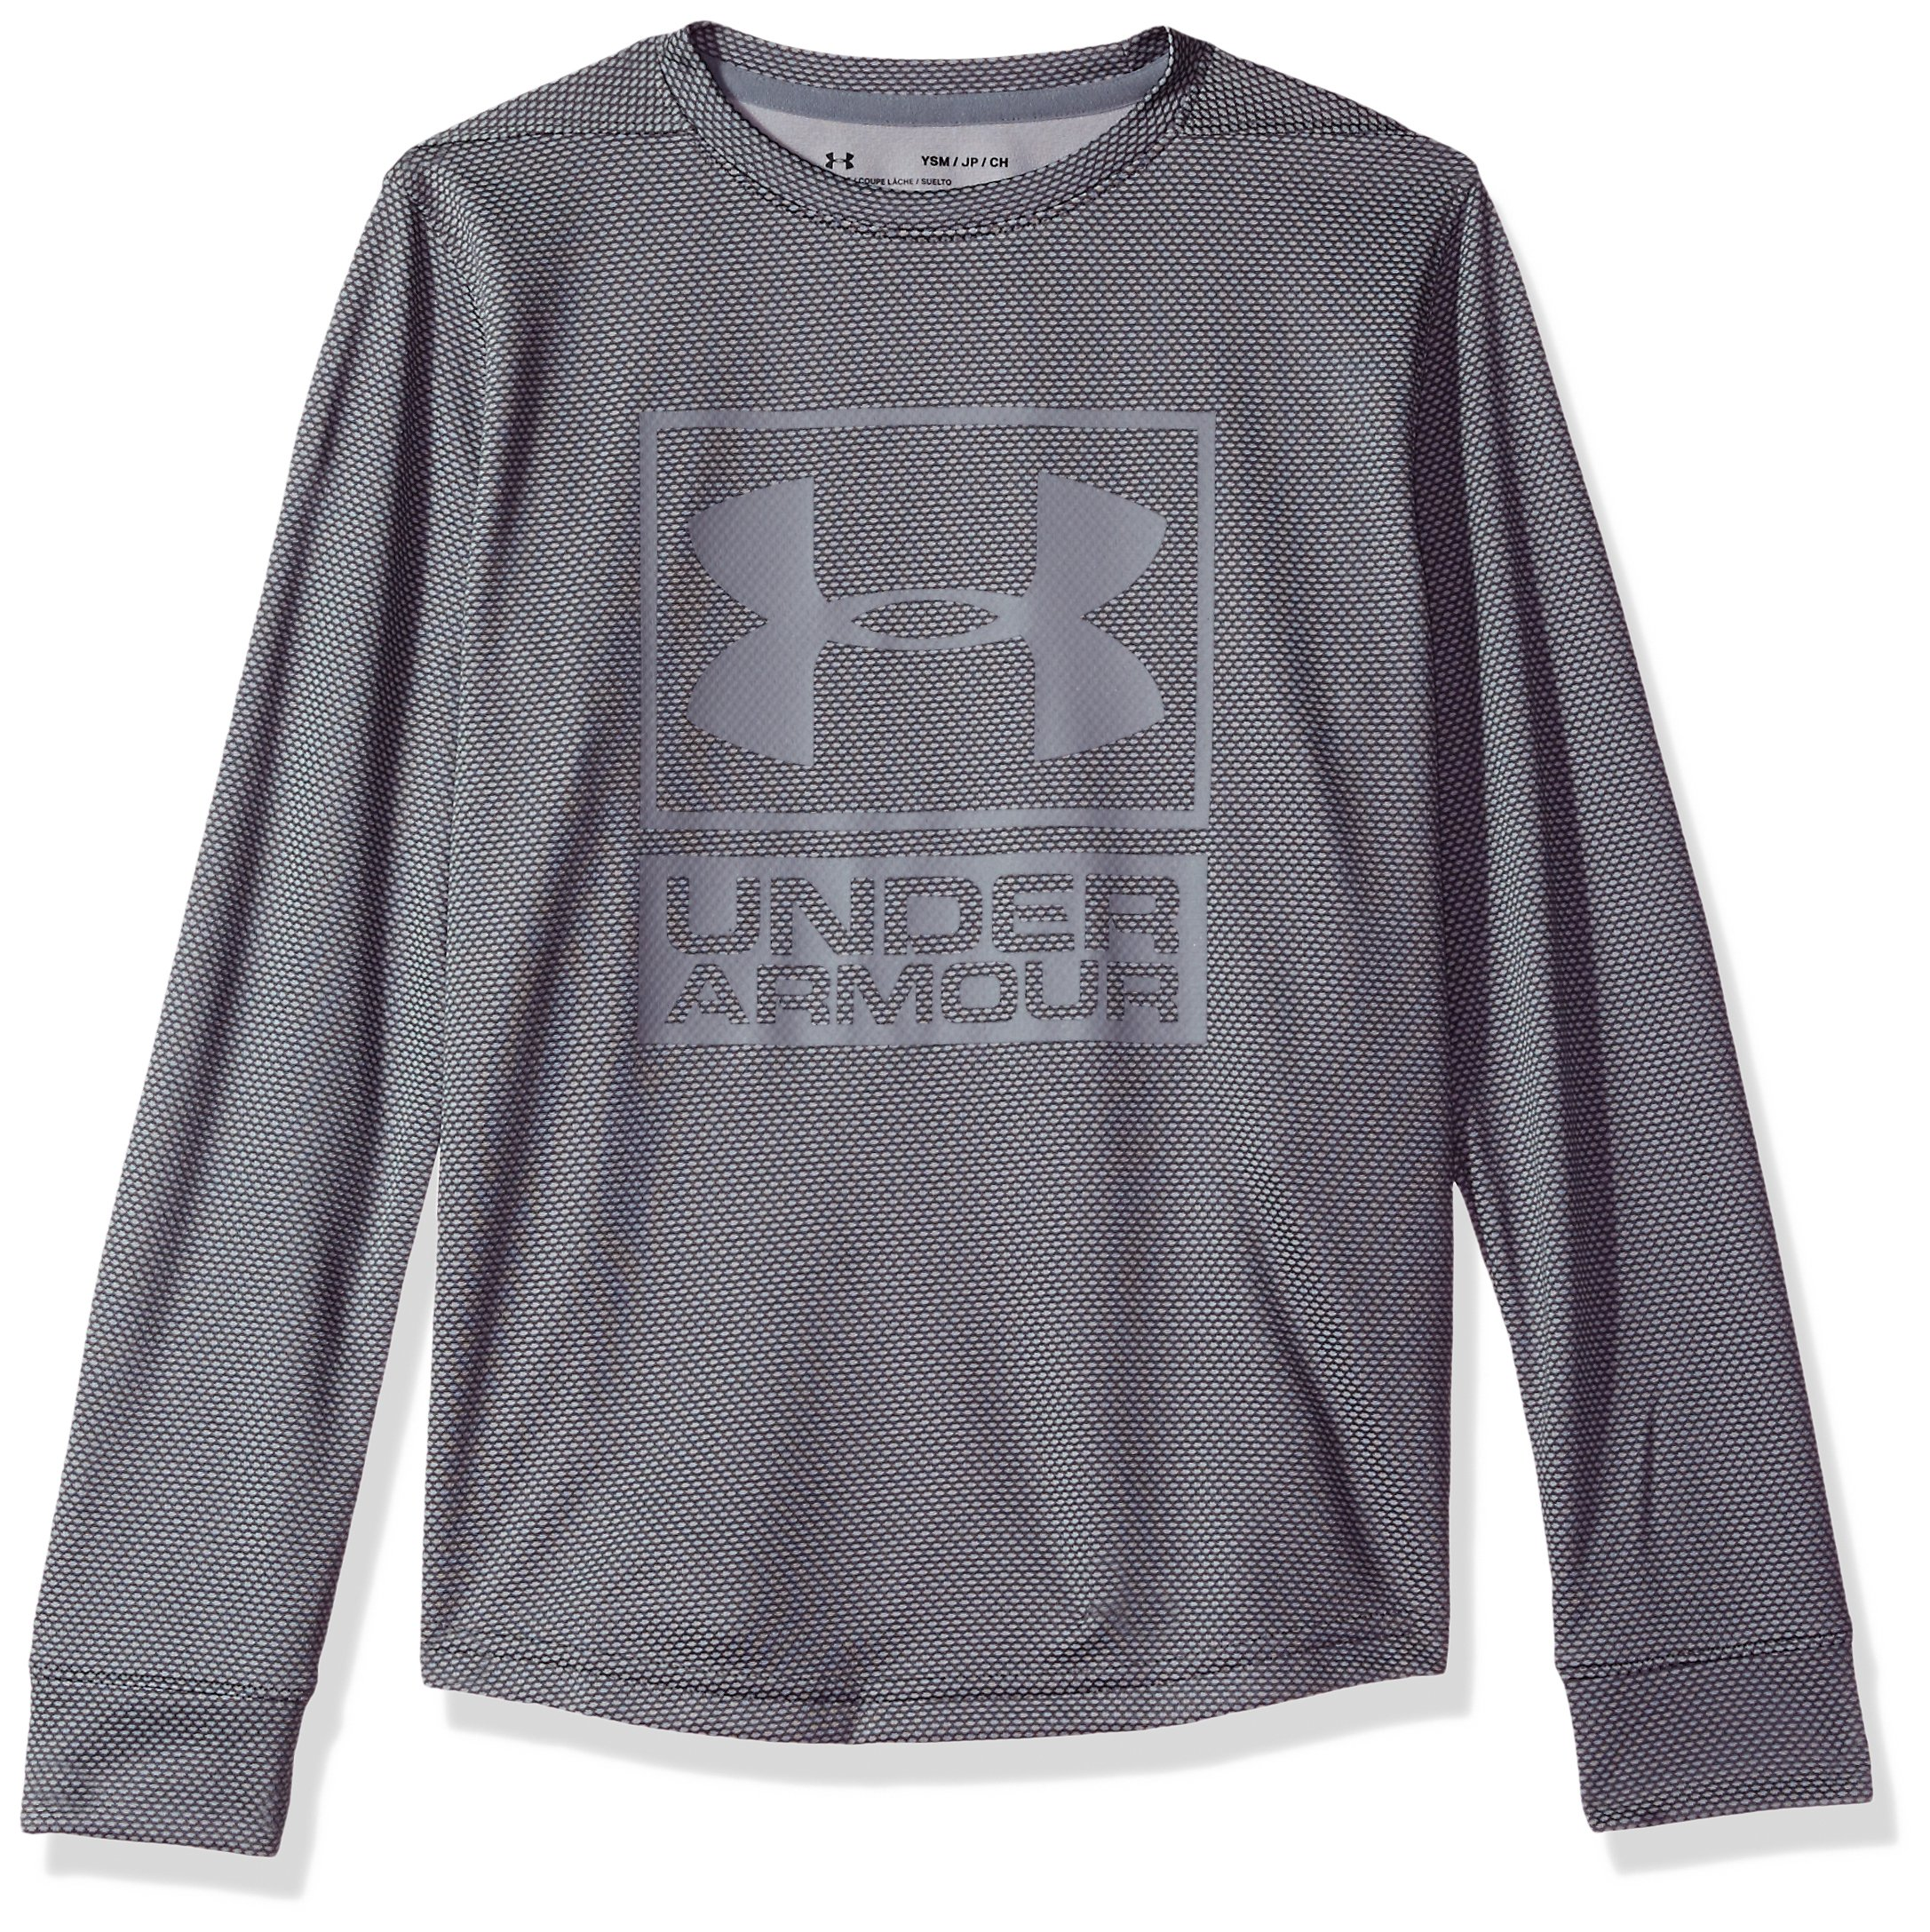 Under Armour Boys' Tech Textured Crew,Graphite /Steel, Youth Medium by Under Armour